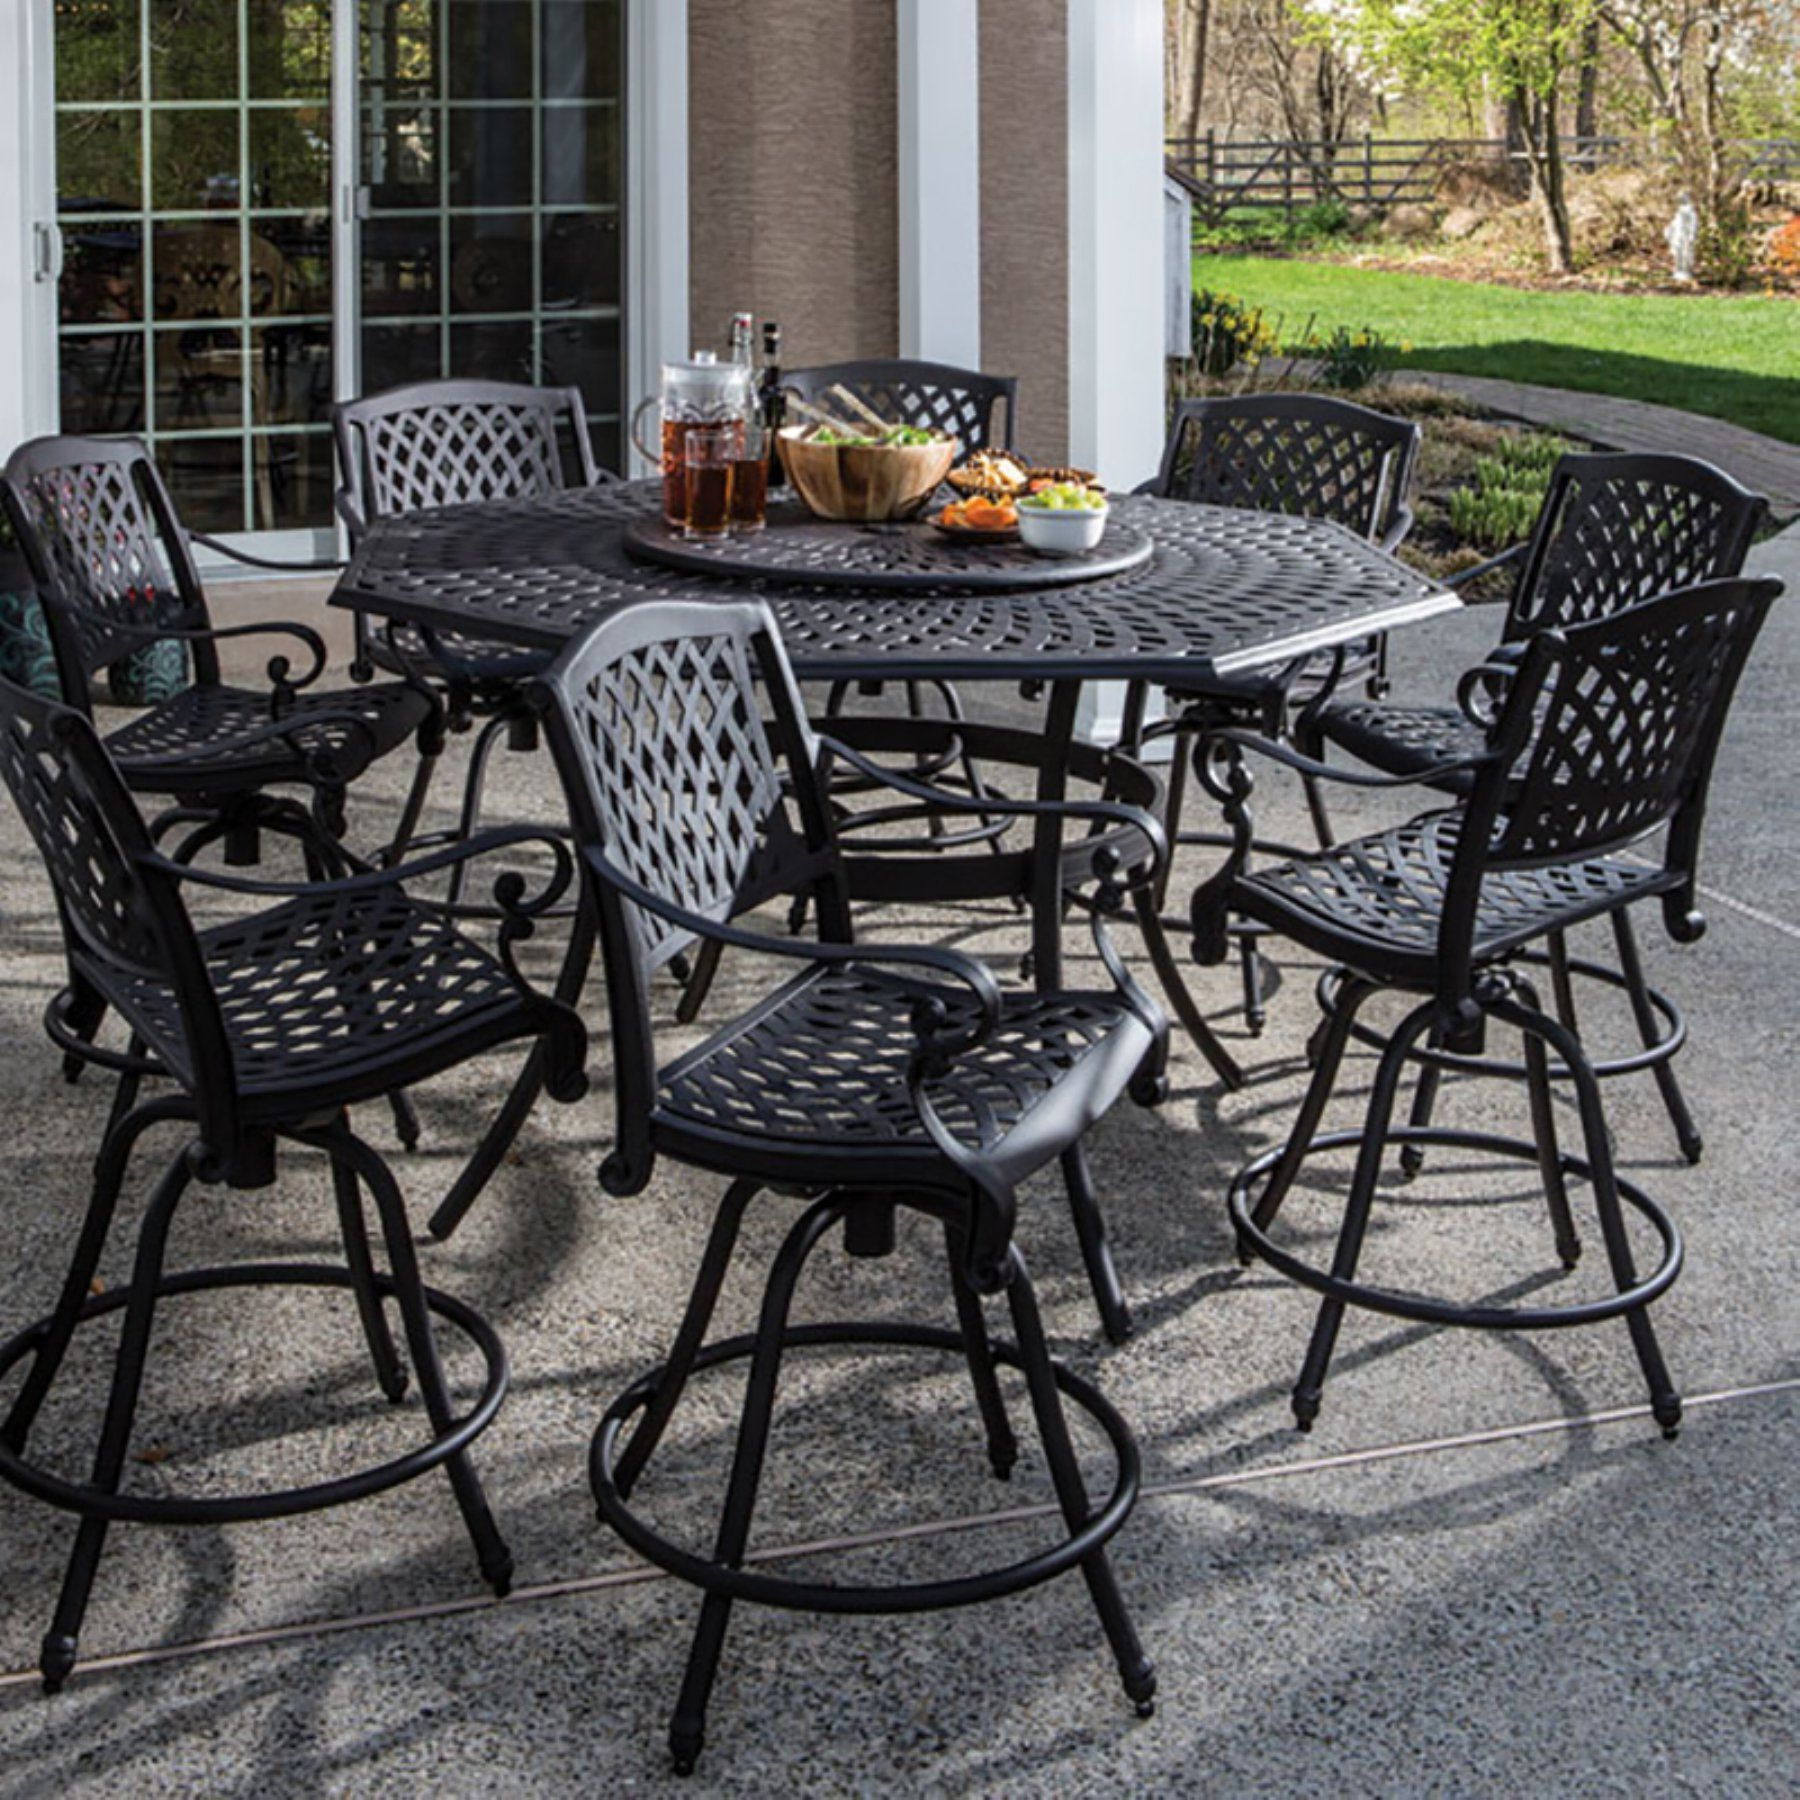 Outdoor Alfresco Home Westbury Aluminum 9 Piece Round Patio Dining